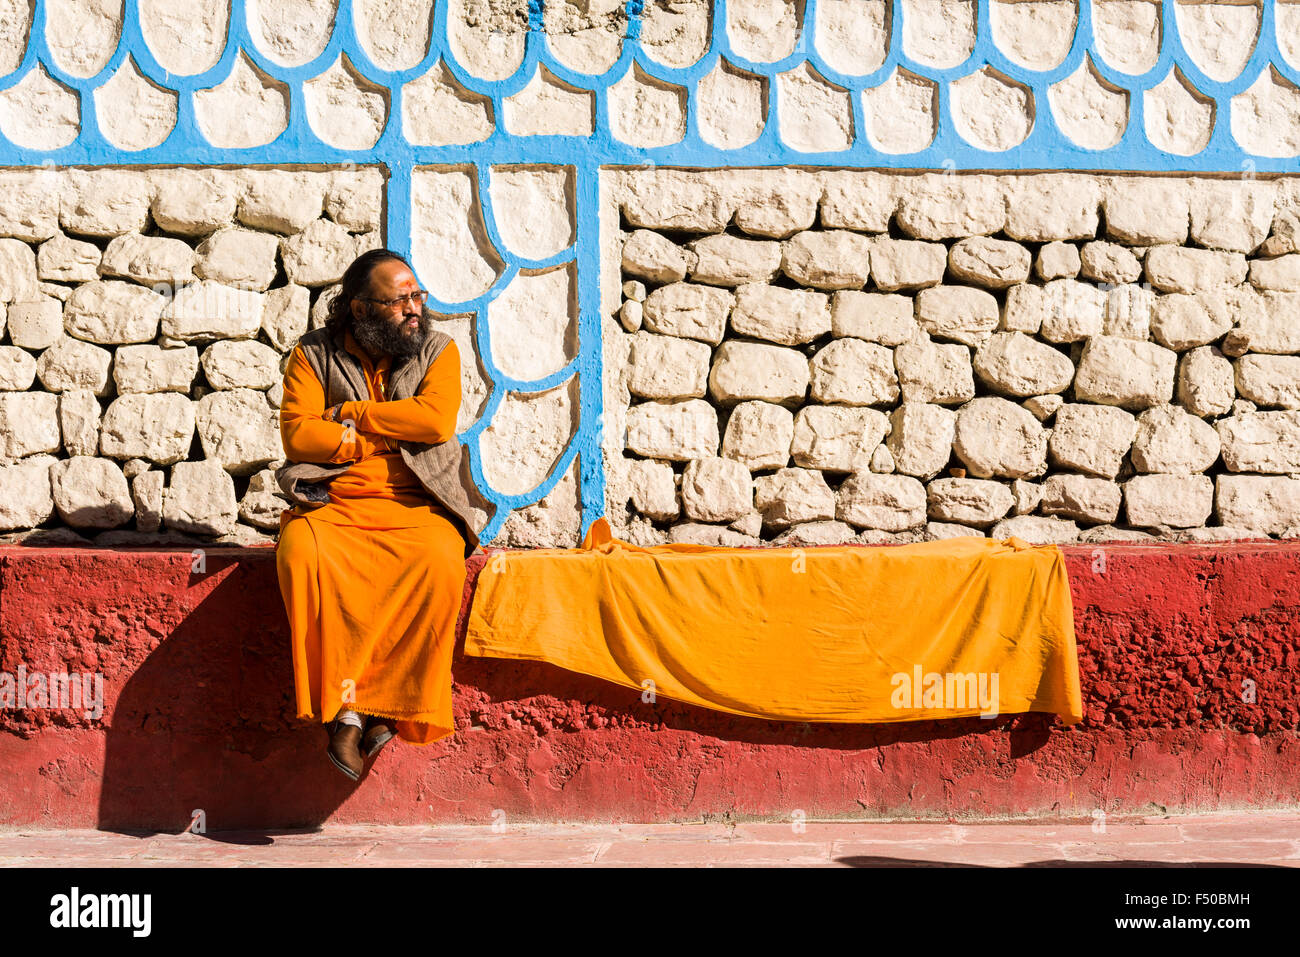 A Sadhu, holy man, is sitting on a wall at the banks of the river Ganges Stock Photo